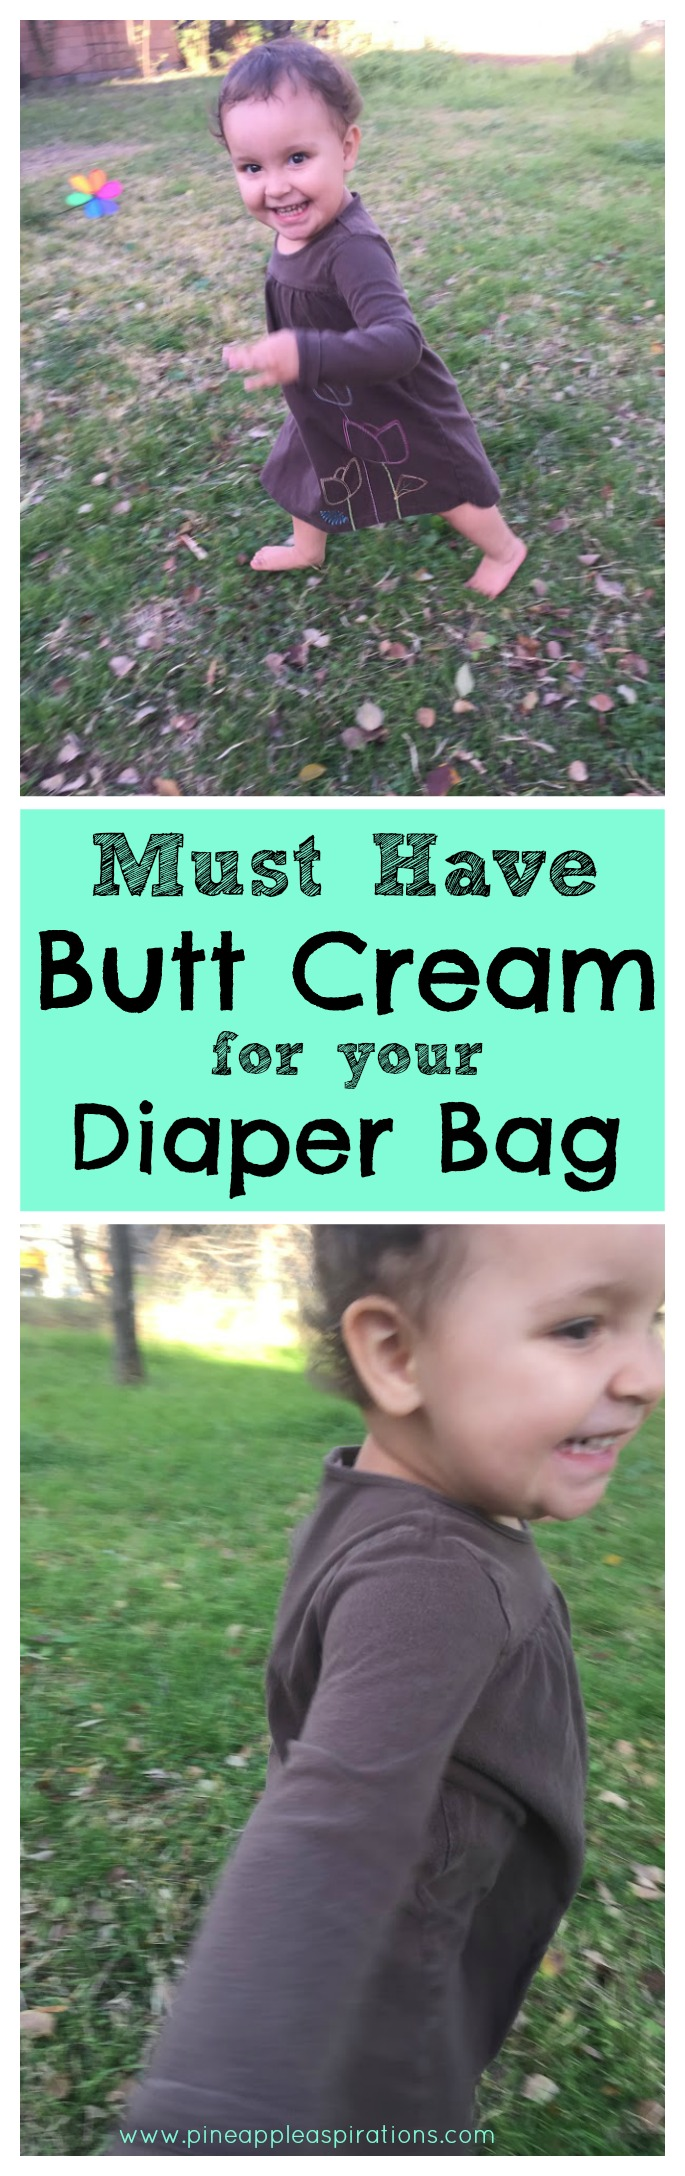 Must Have Butt Cream for your Diaper Bag